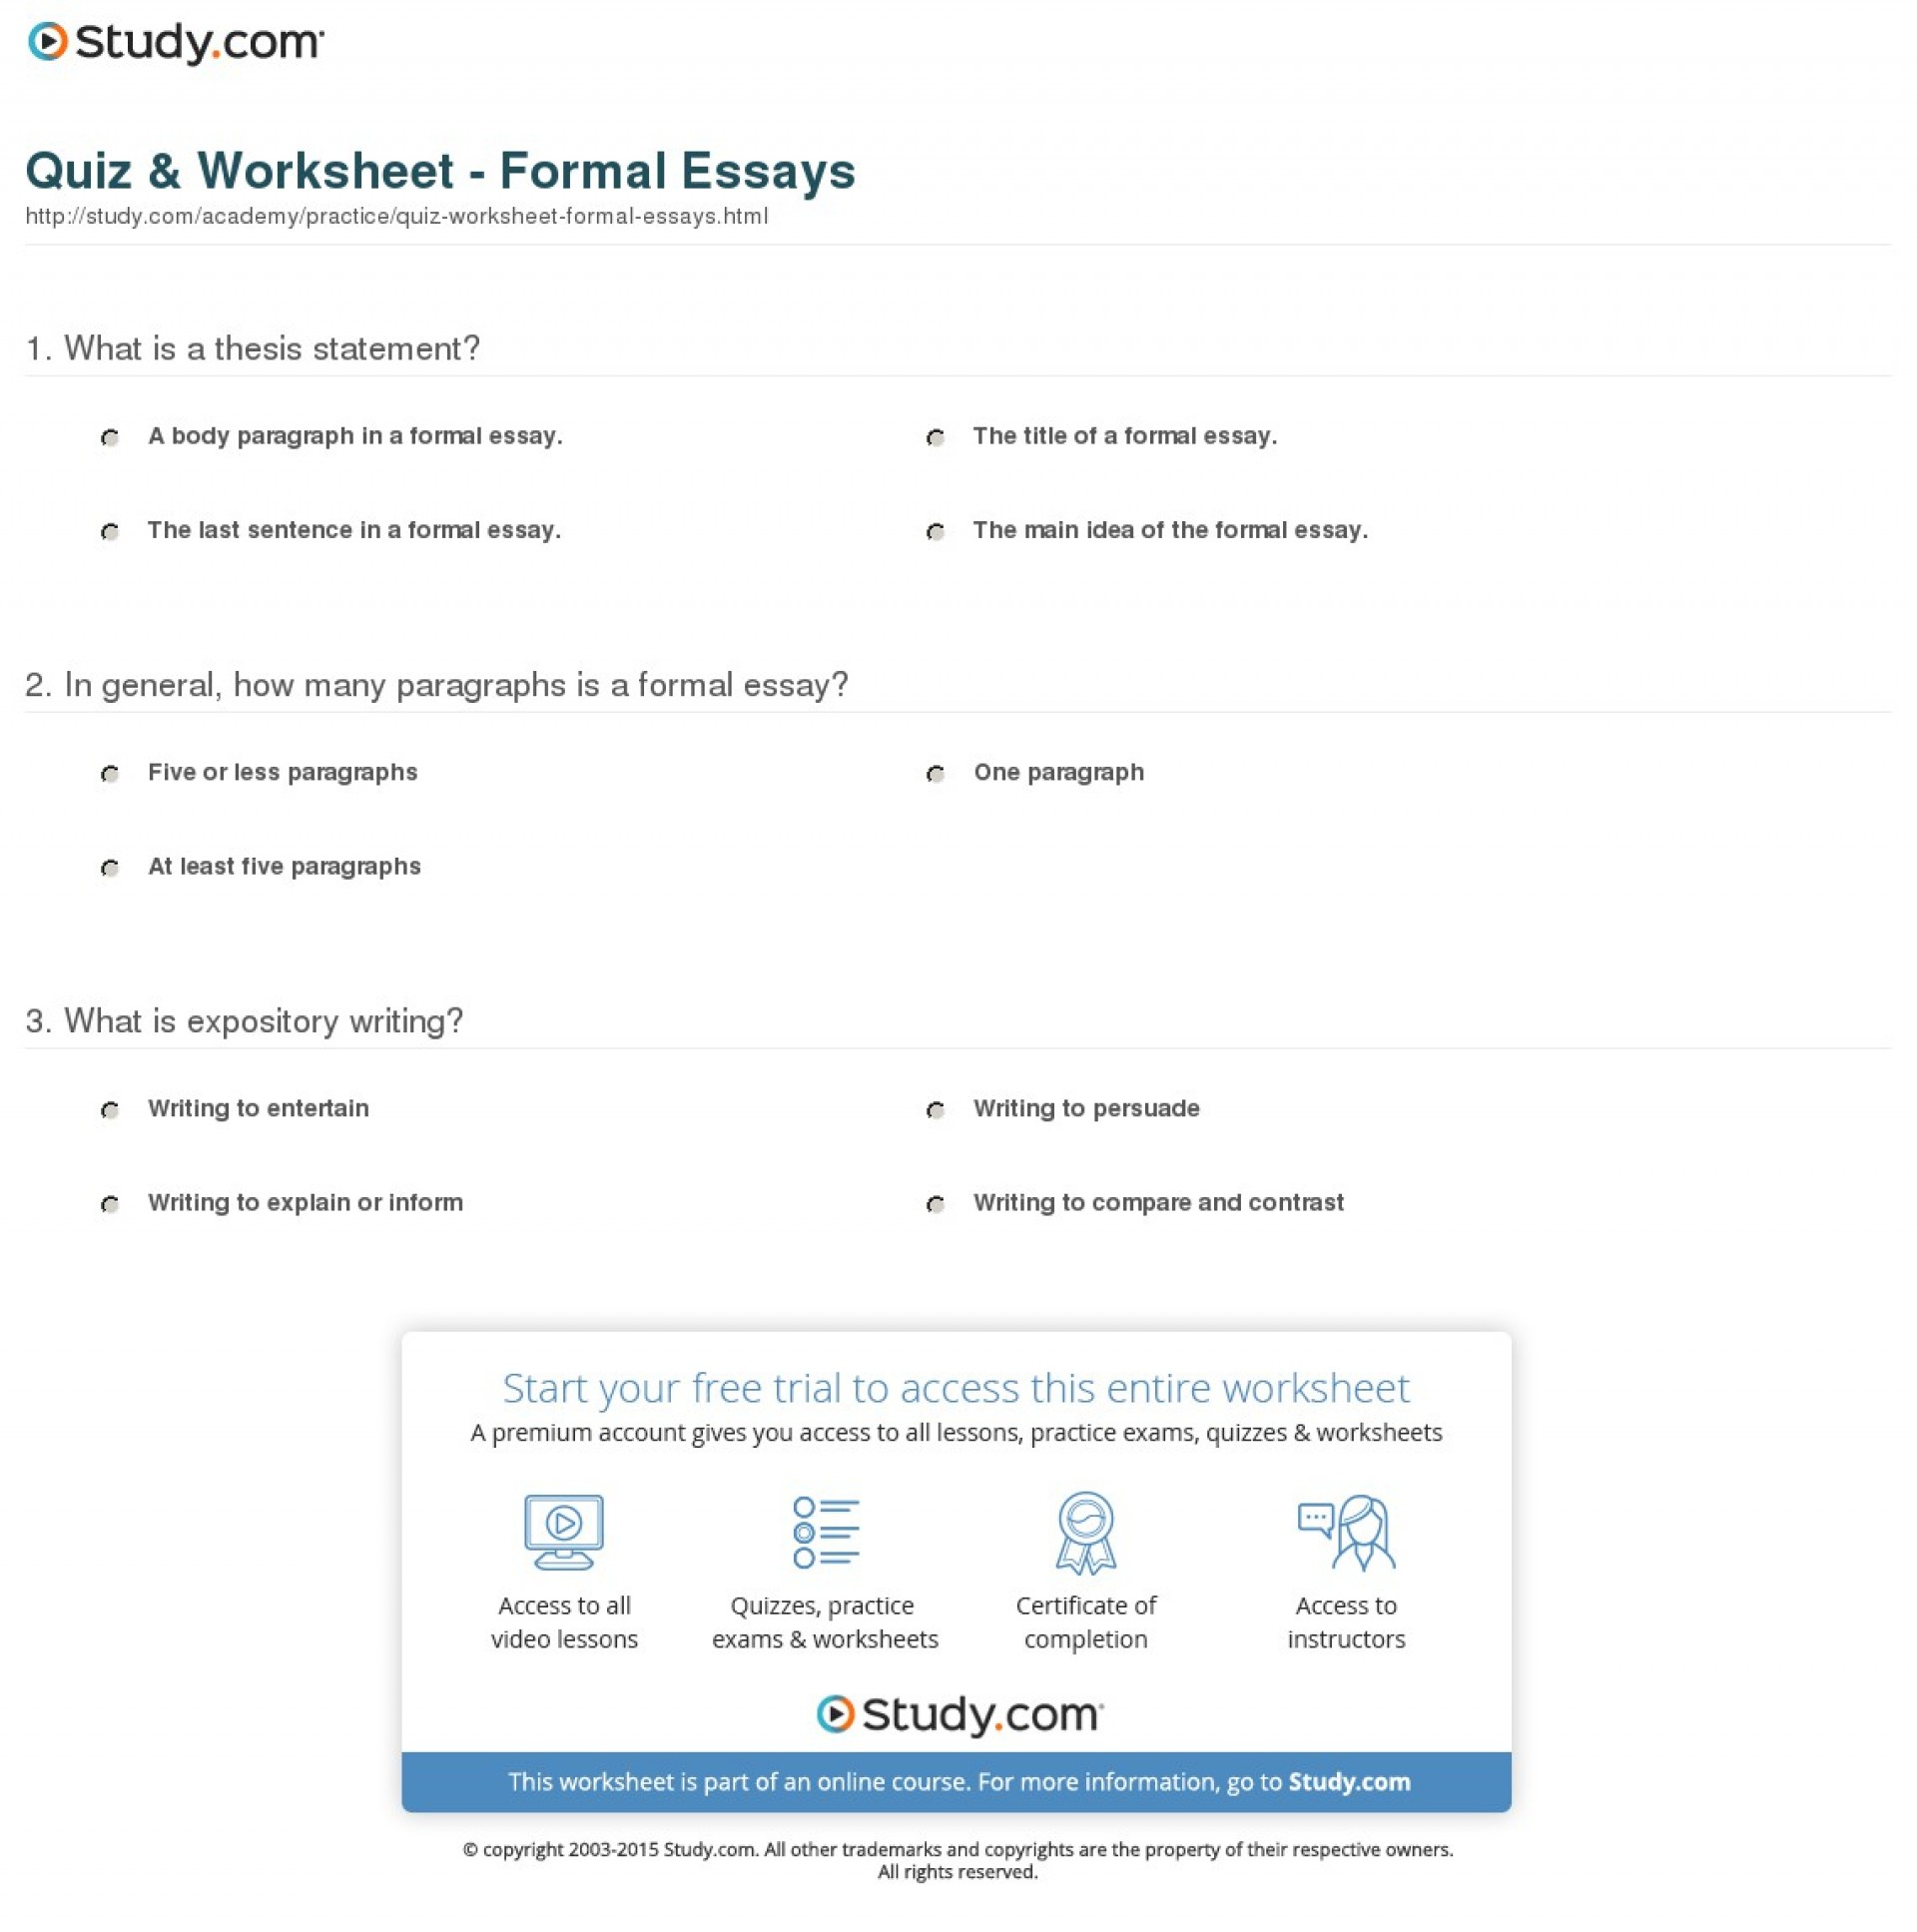 023 Essay Example Quiz Worksheet Formal Essays How Many Paragraphsre In Formidable Paragraphs Are A Argumentative Narrative 1920